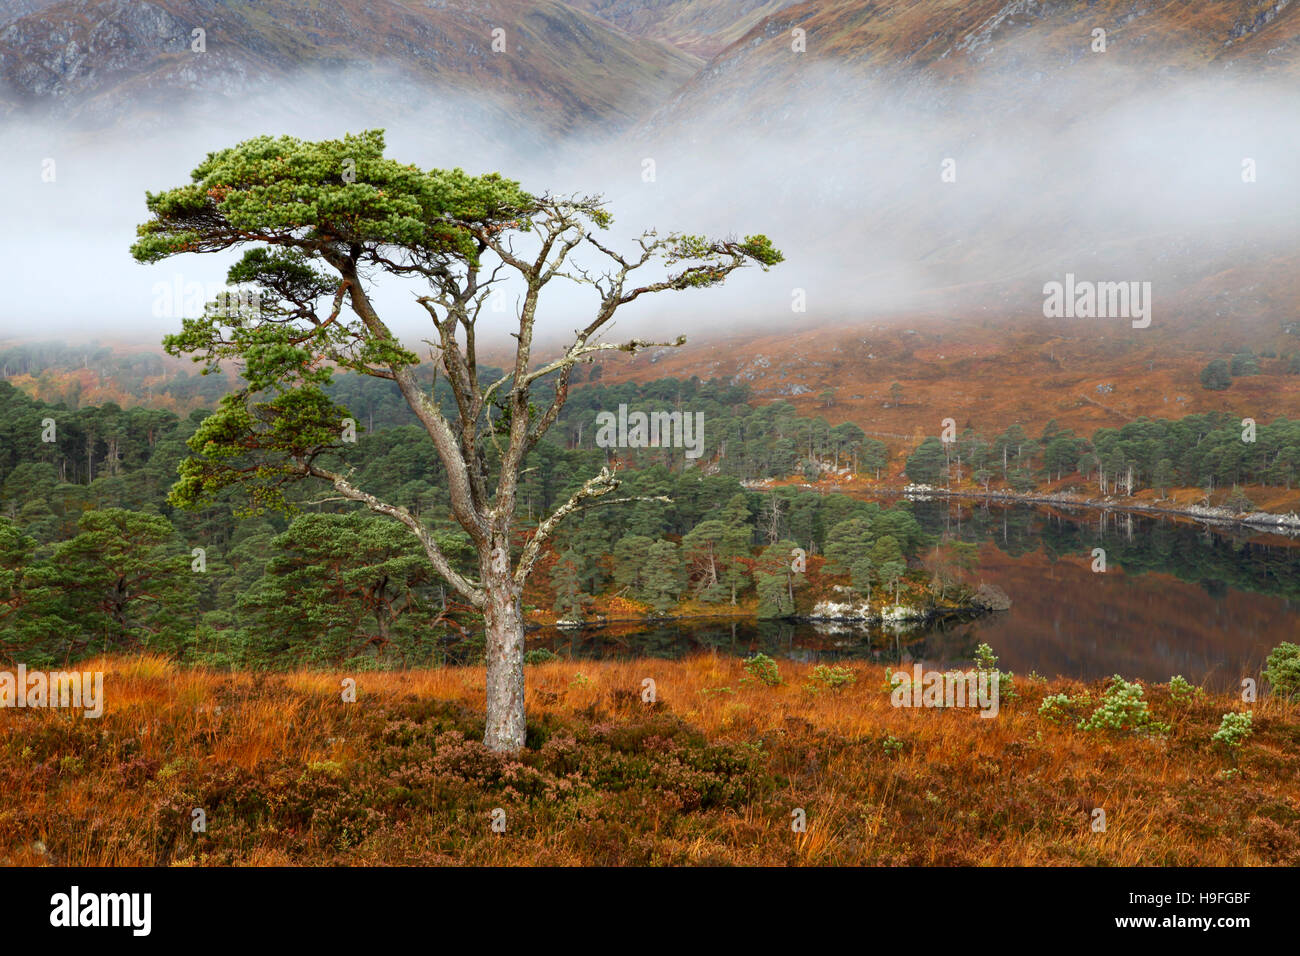 A scots pine standing on a hillside above Loch Affric, Inverness-shire, Scotland on a misty morning in October. Stock Photo